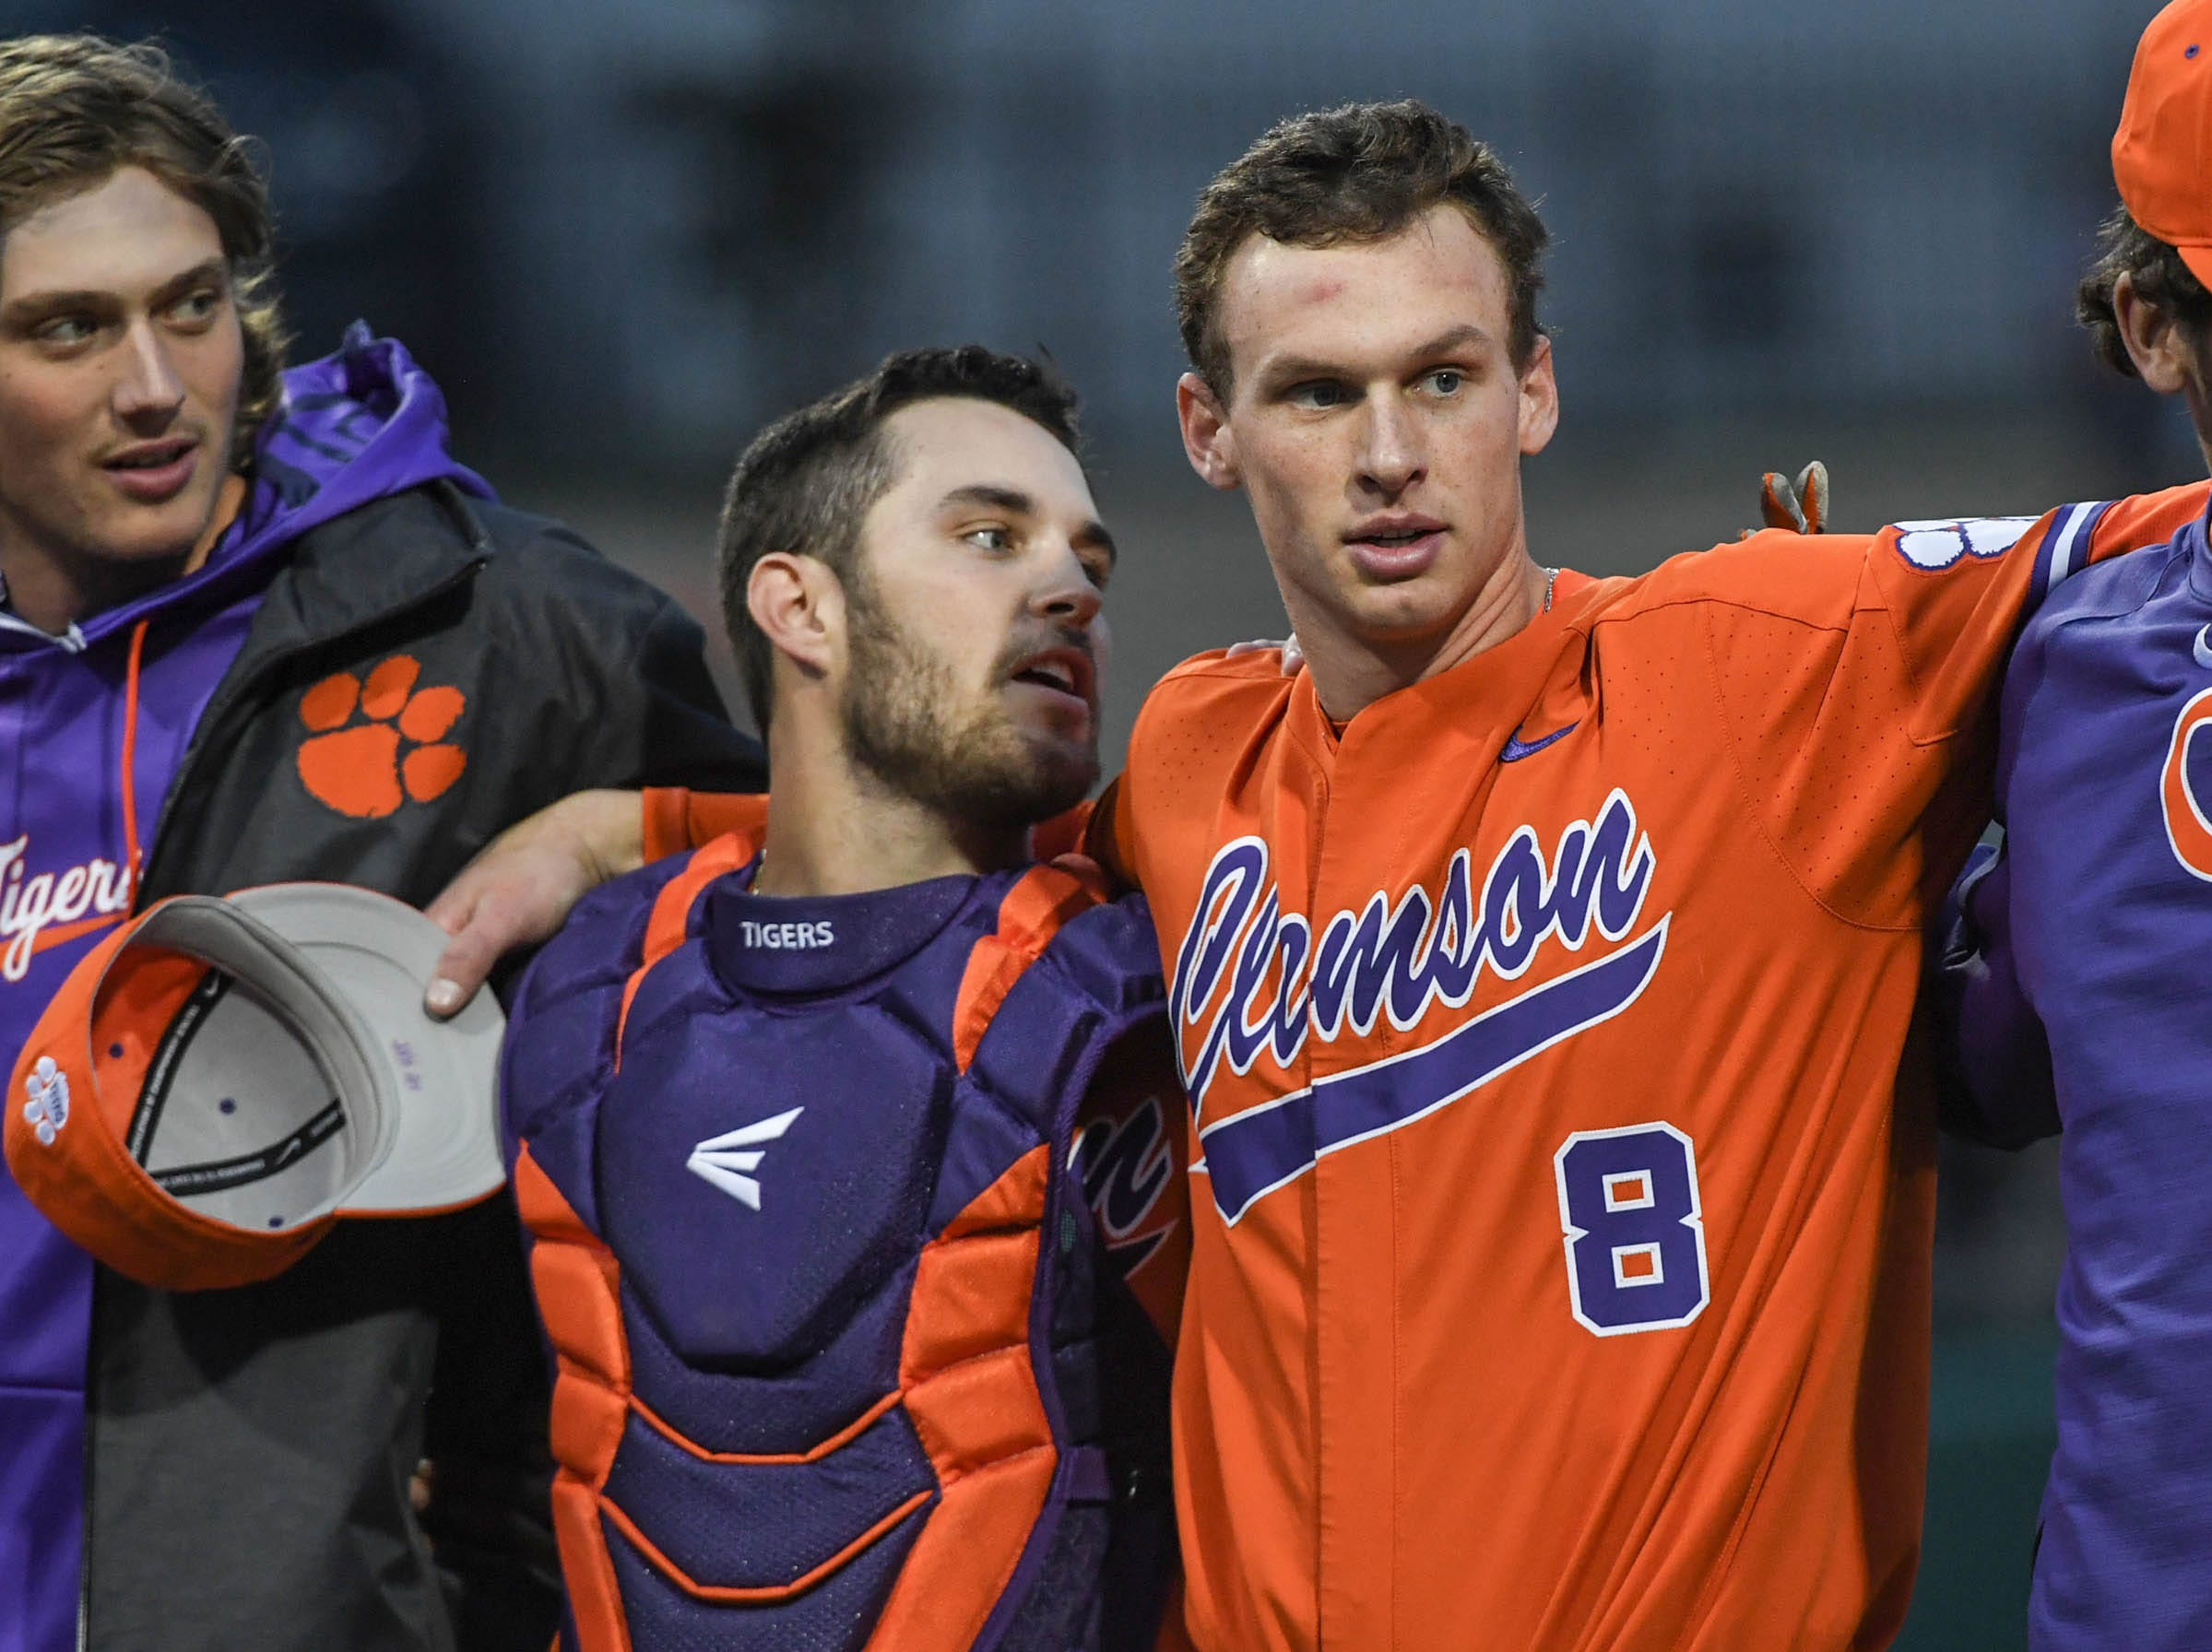 Clemson junior Kyle Wilkie(10), left, and junior Logan Davidson(8), right, senior Grayson Byrd(4), during the alma mater after a 6-2 win over South Alabama in the season opener at Doug Kingsmore Stadium in Clemson Friday, February 15, 2019.